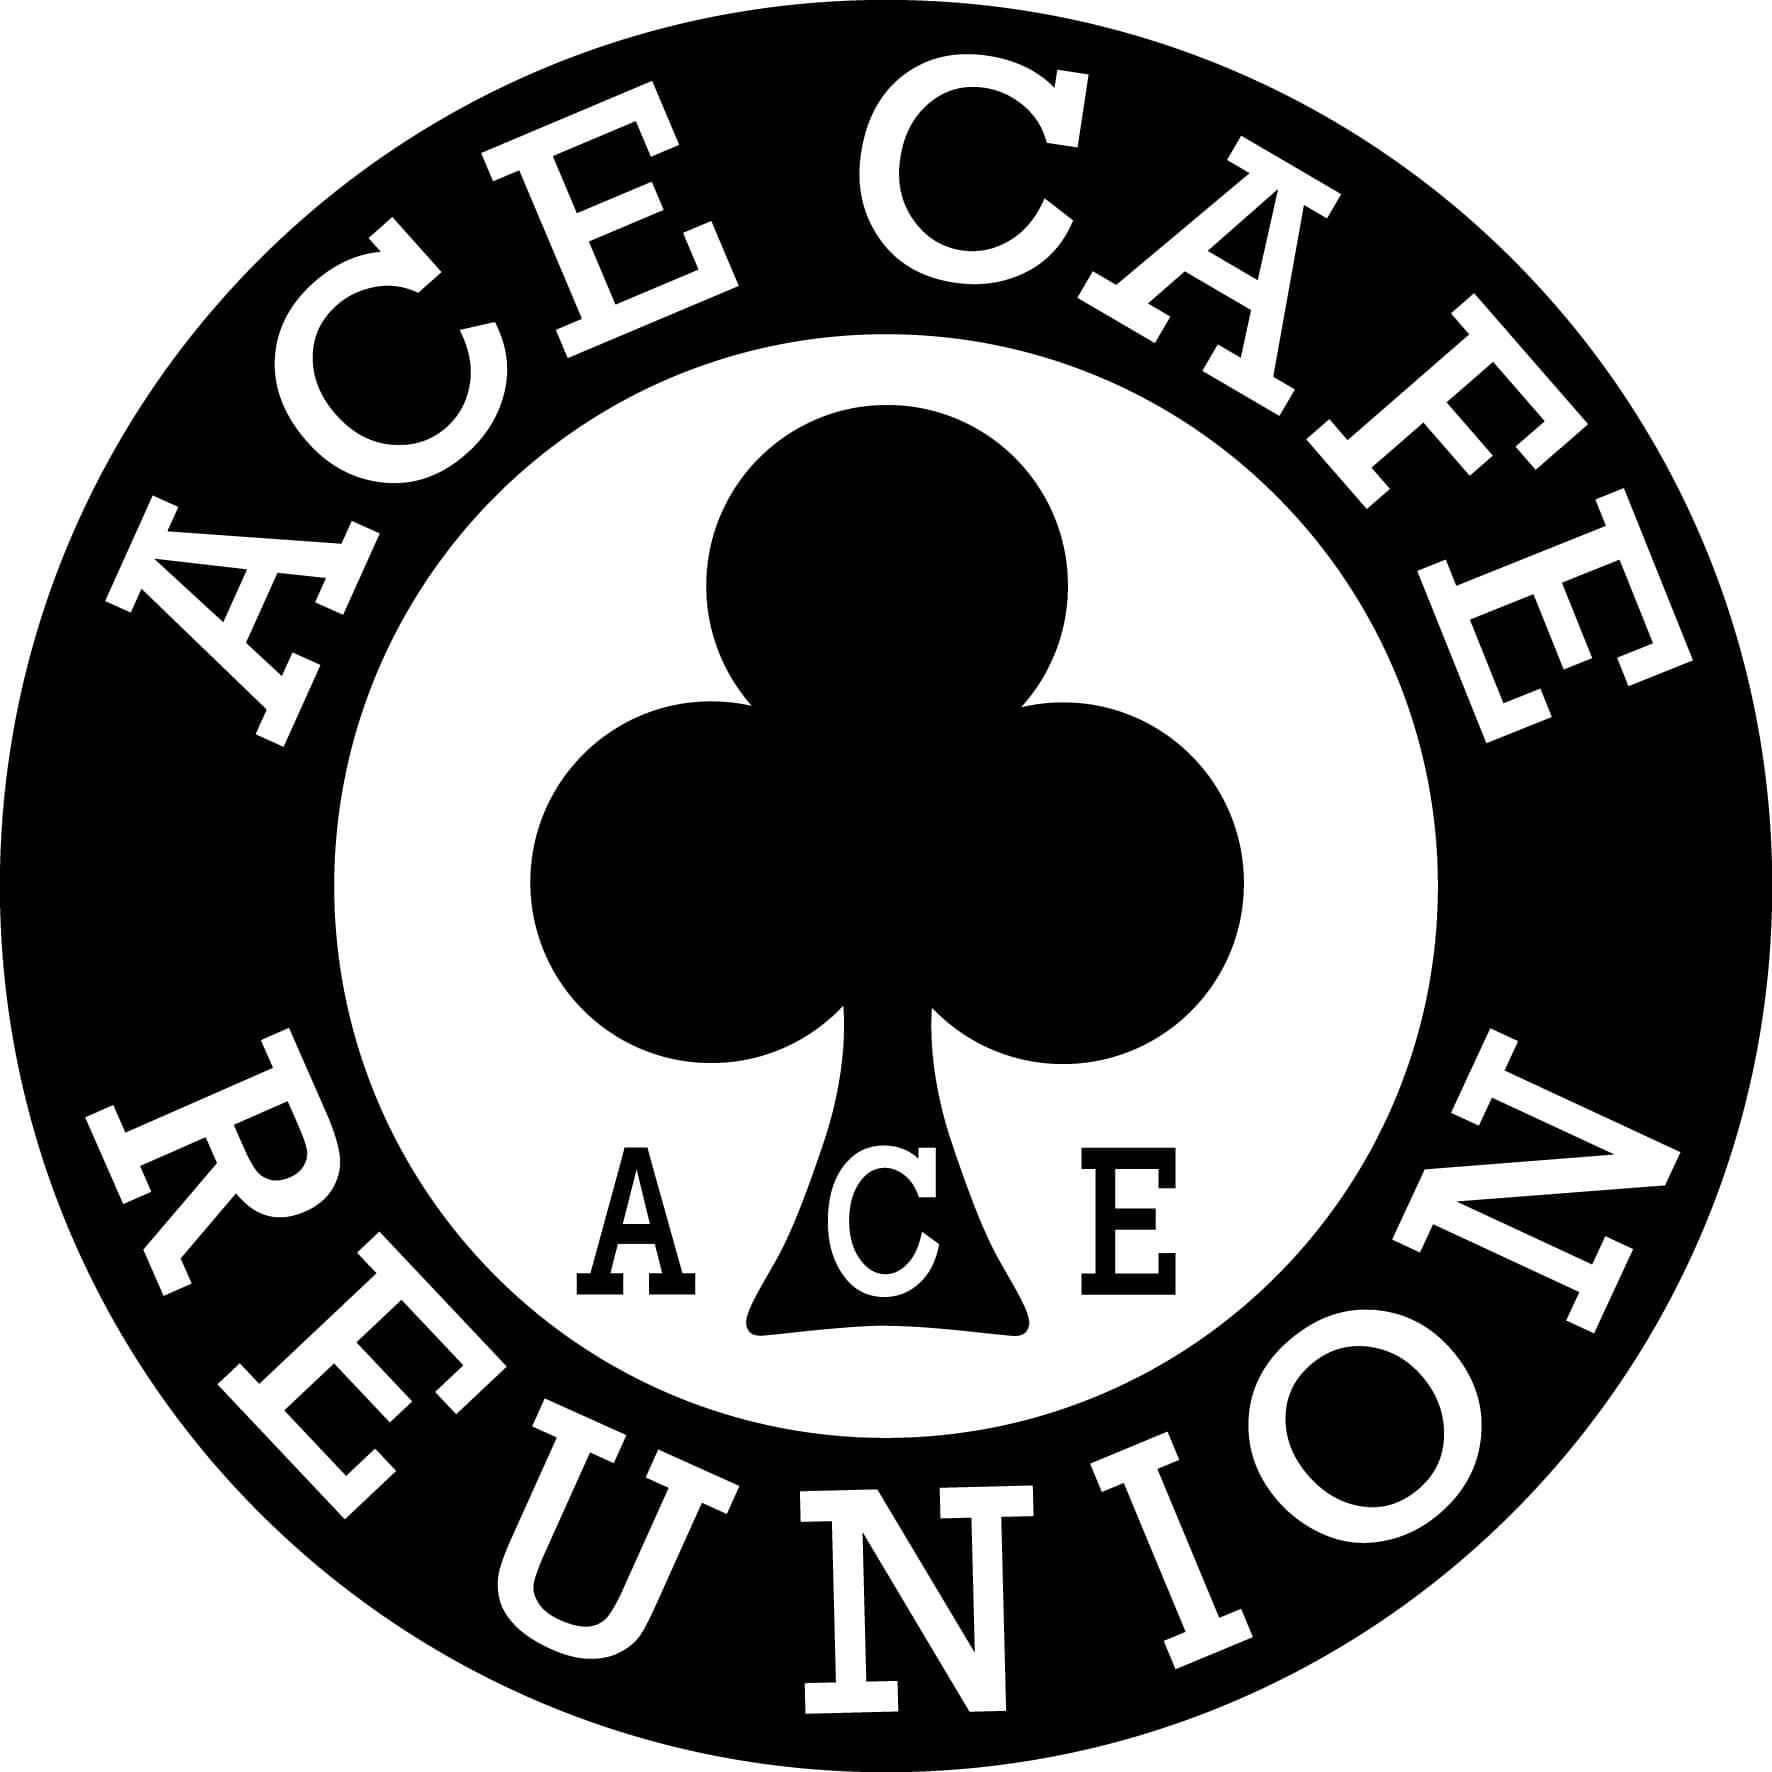 The 24th Annual Ace Cafe Reunion Friday 8th And Saturday 9th September 2017  At The Cafe. Sunday 10th September Brighton Burn Up Three Days, Three  Rides, PlusPng.com  - Ace Cafe London Vector PNG